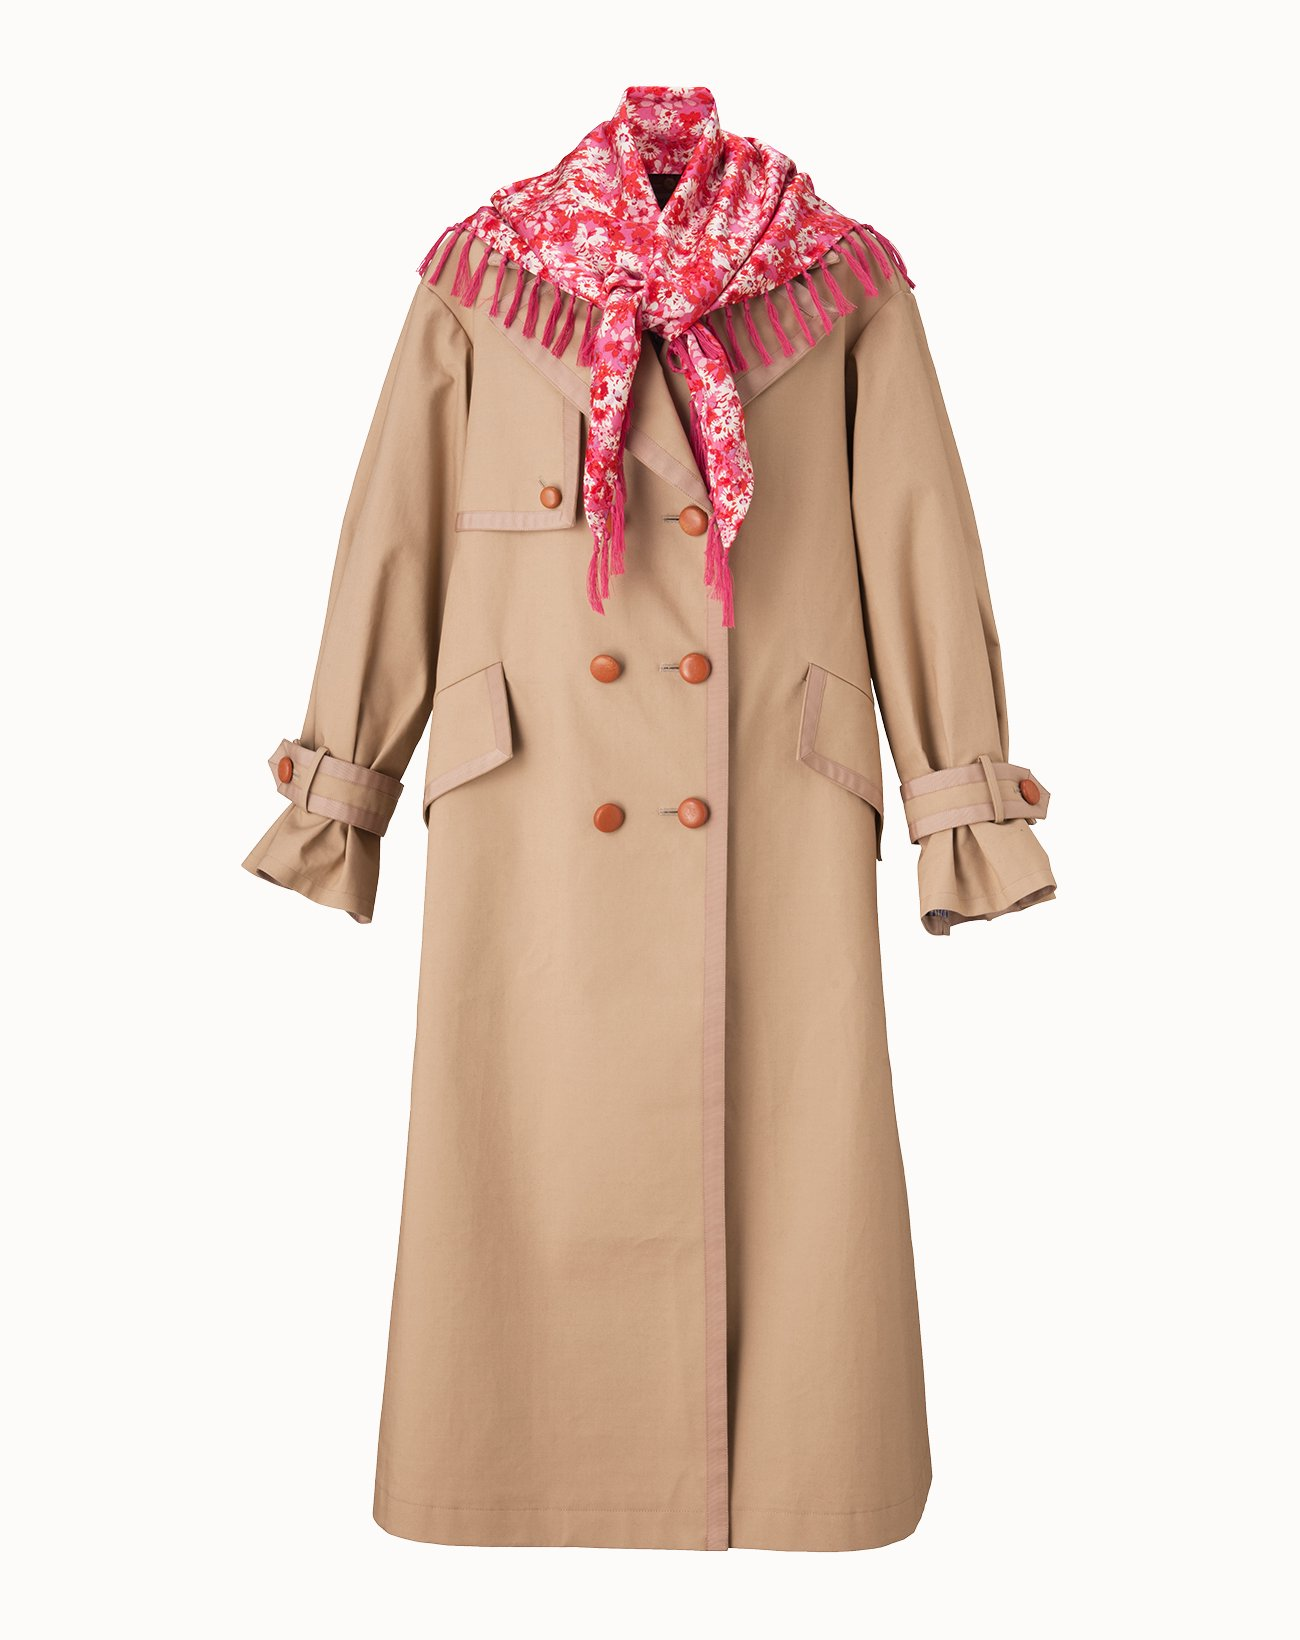 Bonding Coat - Beige